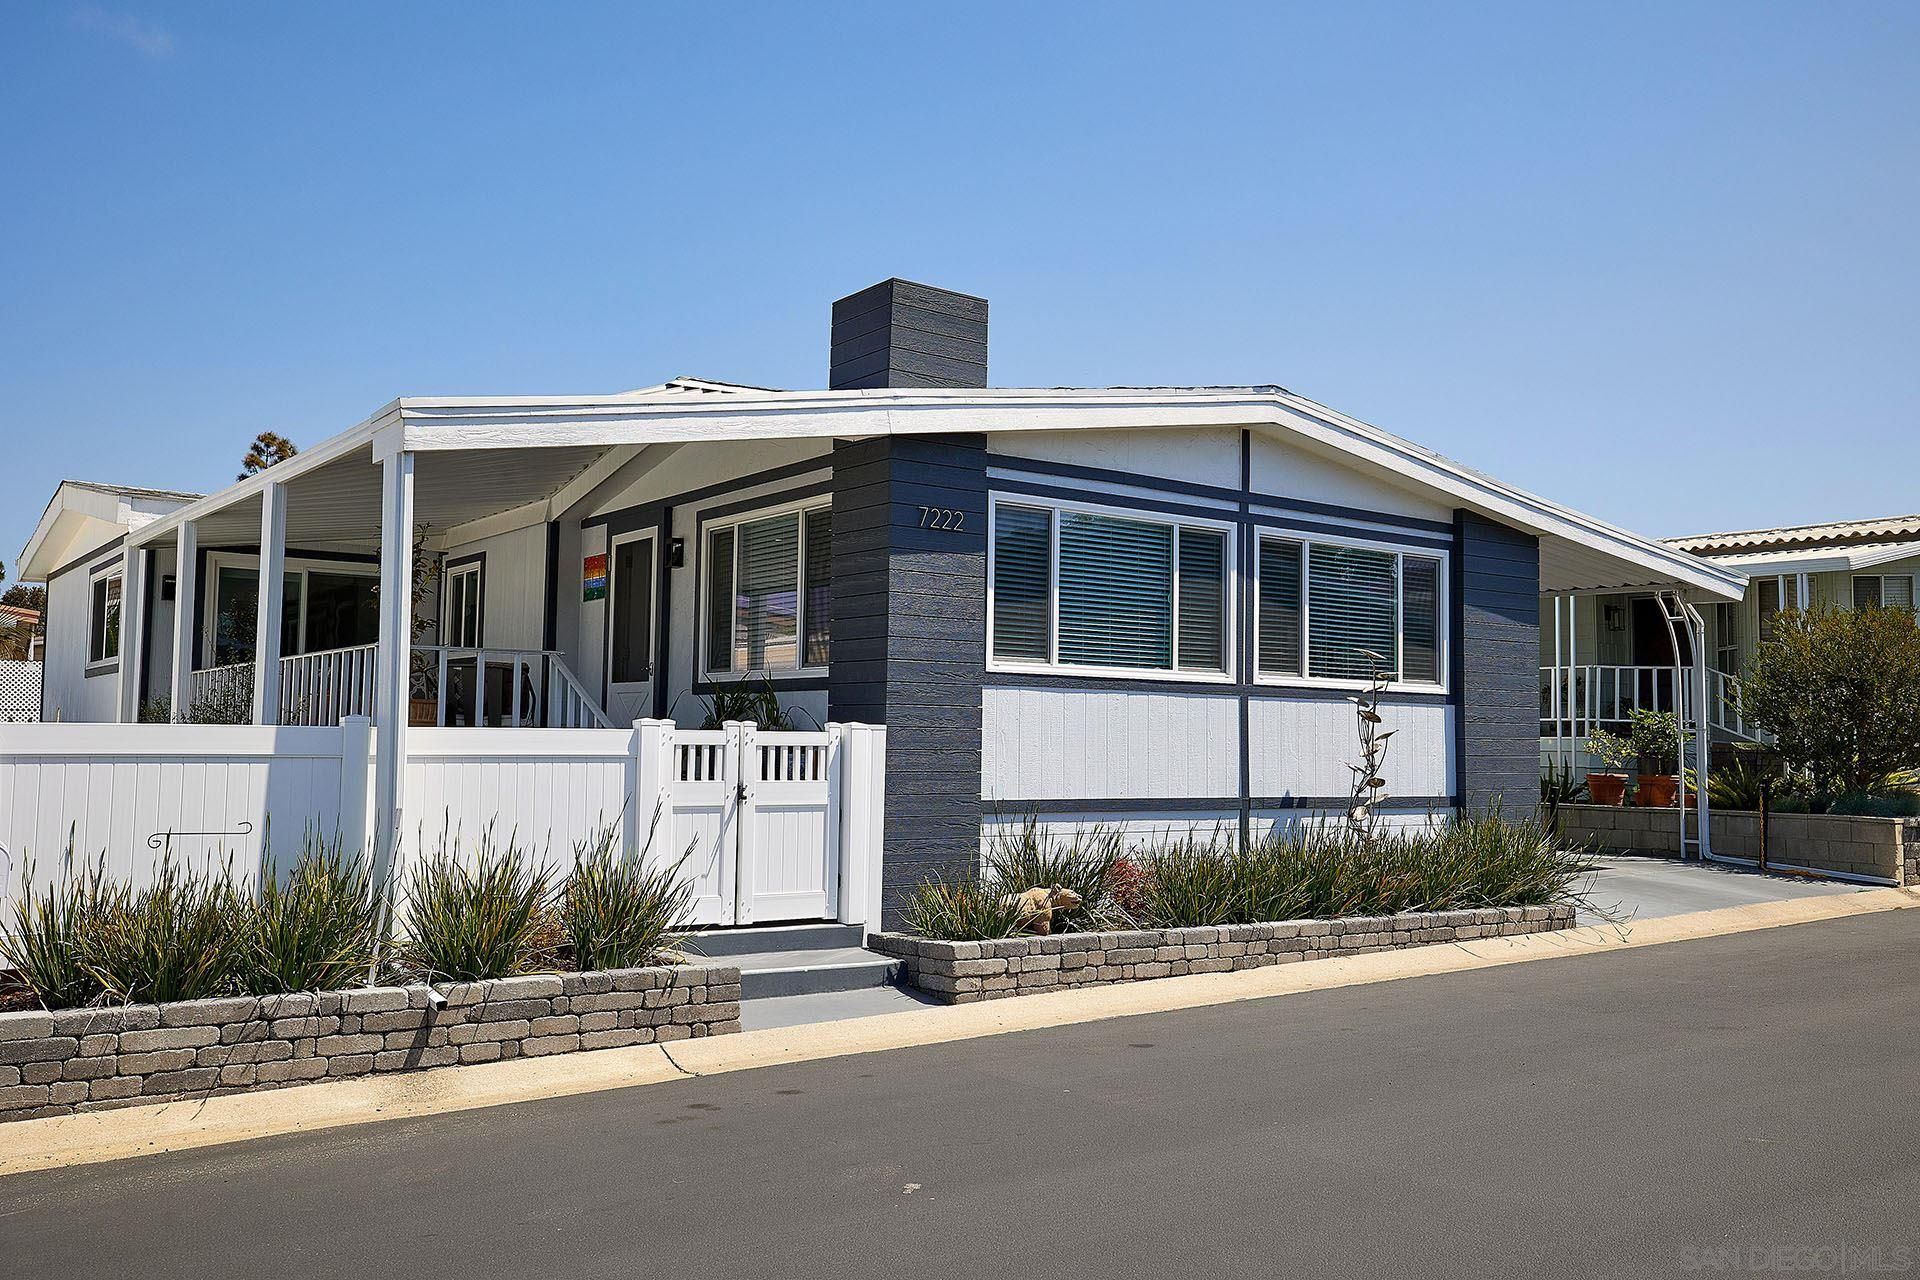 Main Photo: CARLSBAD WEST Manufactured Home for sale : 2 bedrooms : 7222 San Benito St #348 in Carlsbad